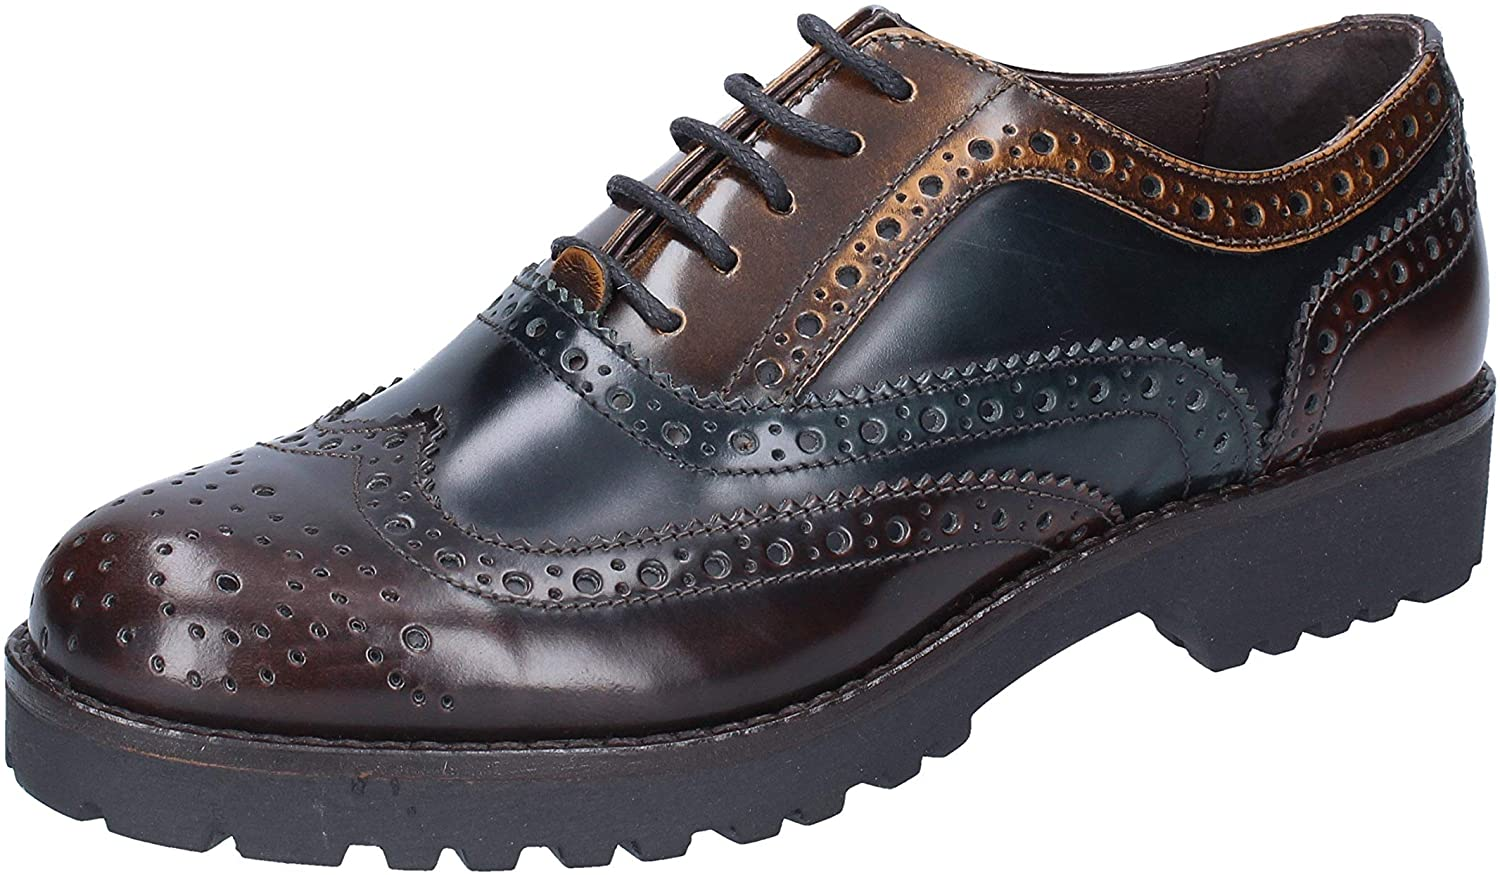 Mally Oxfords-Shoes Womens Leather Brown